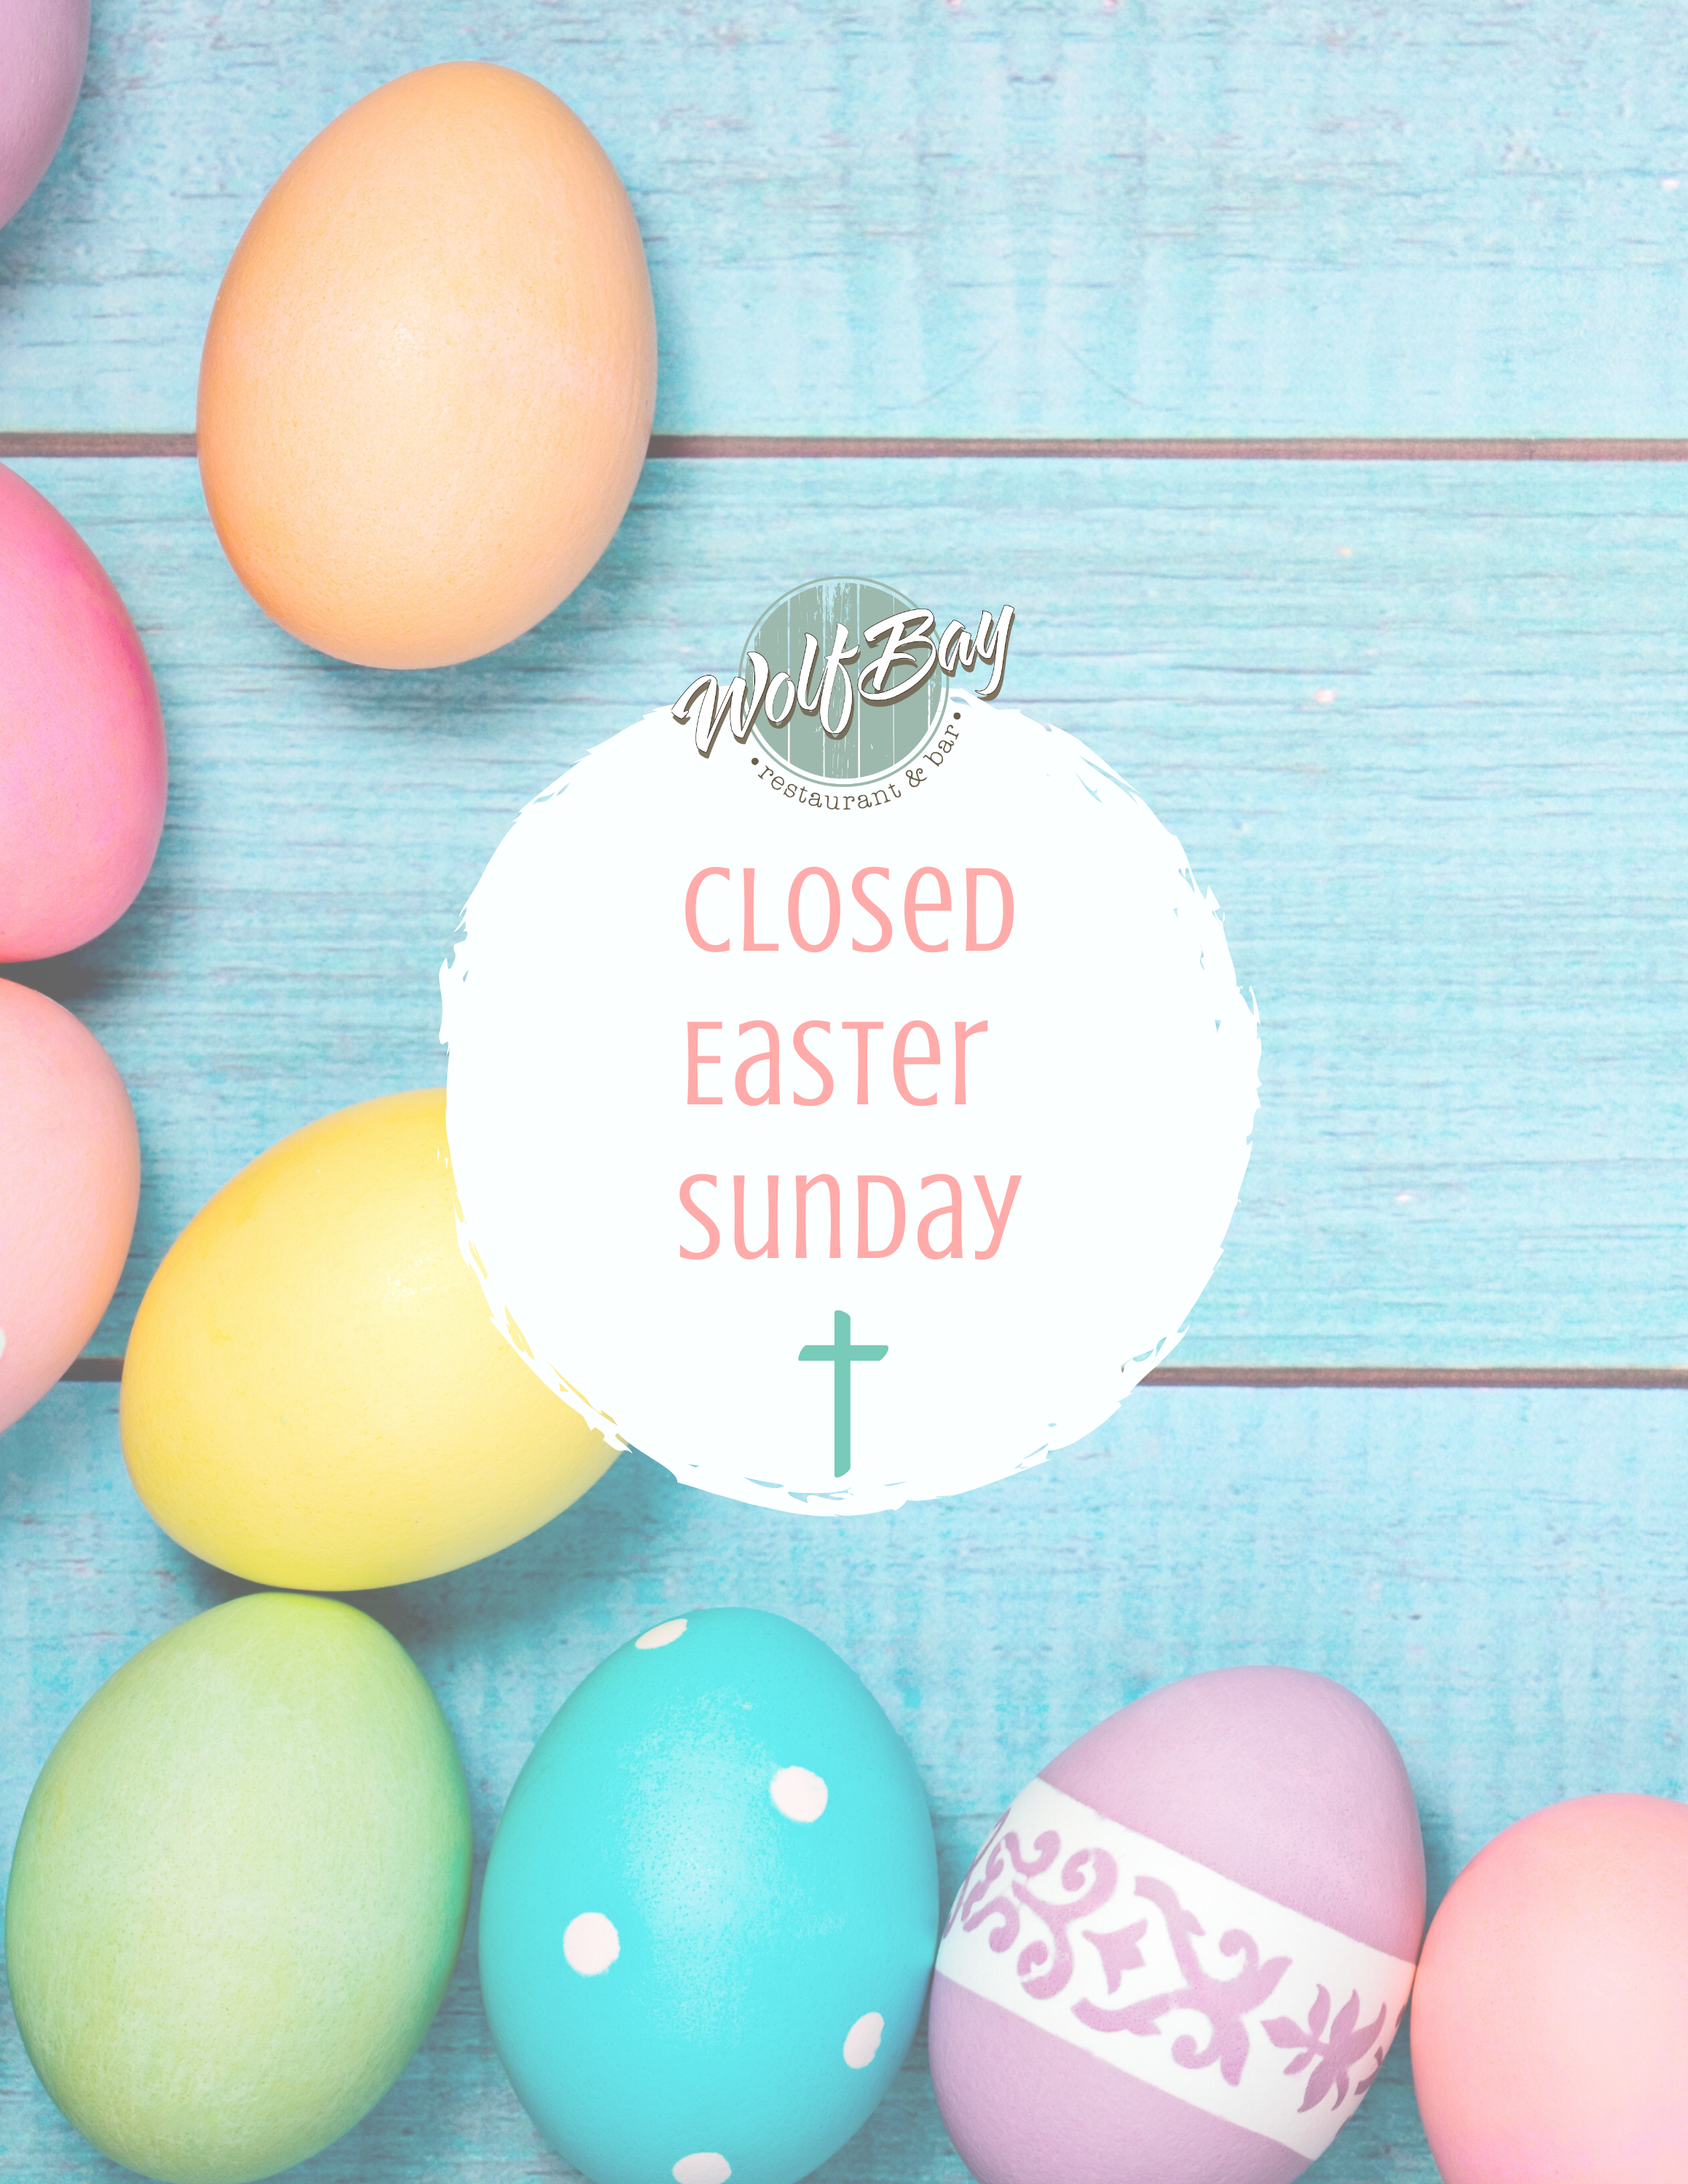 Closed Easter - Order Easter Meals for Pick Up on Saturday!